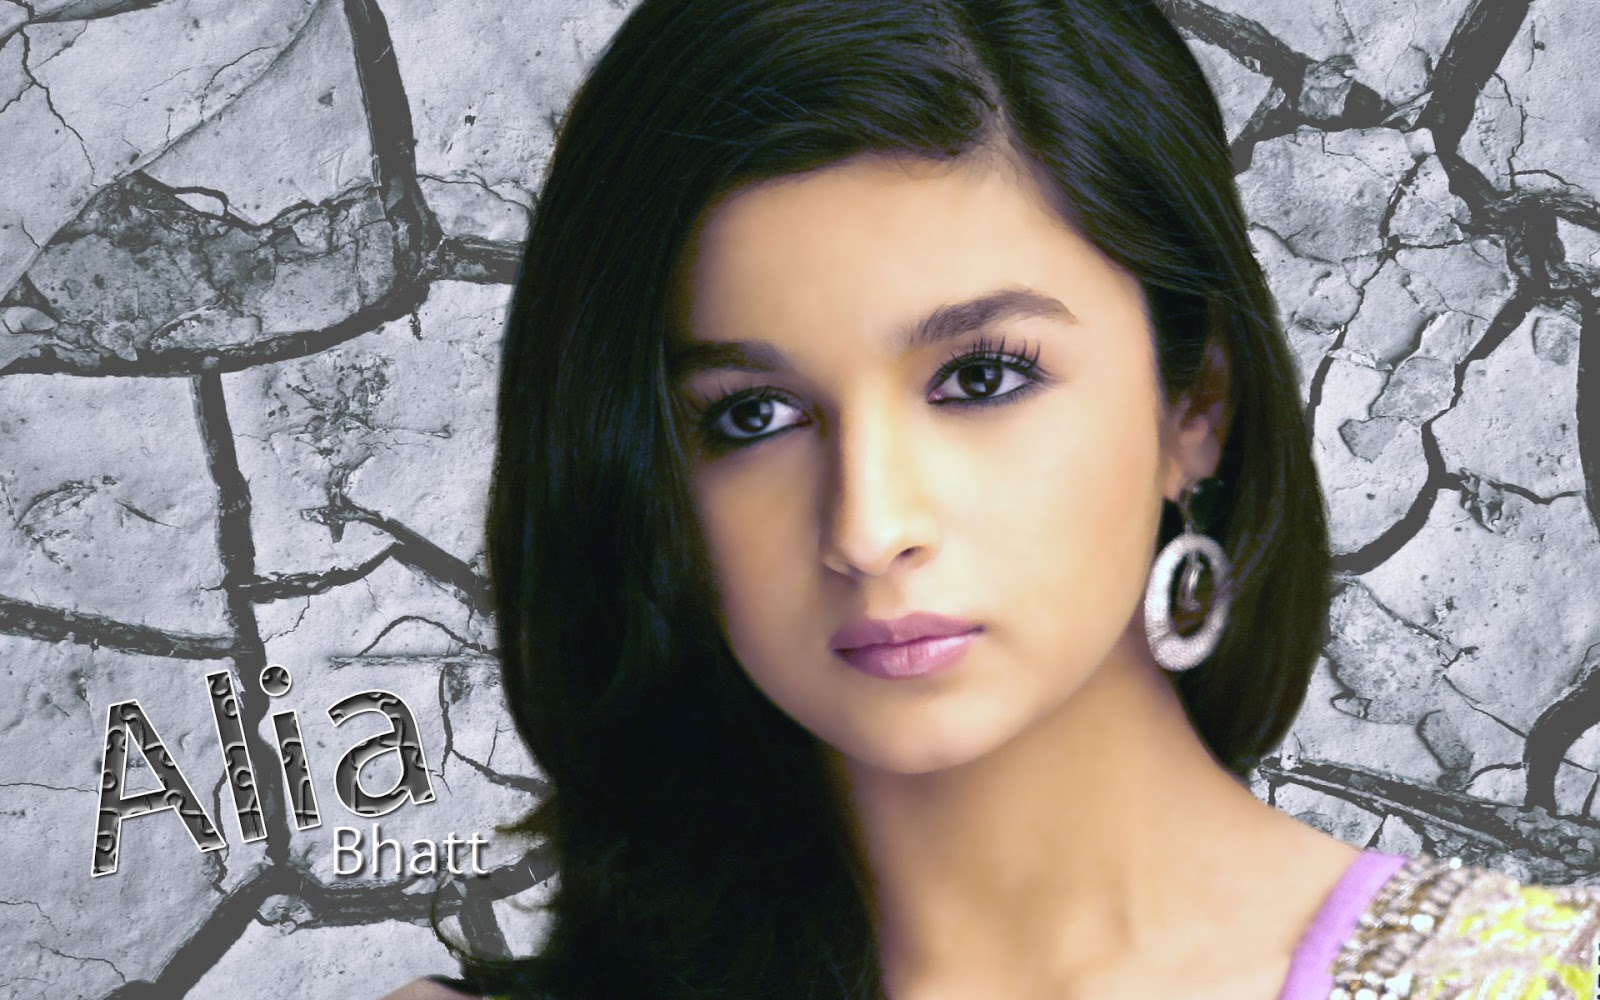 Alia Bhatt 1920x1080 Desktop Wallpaper in HD